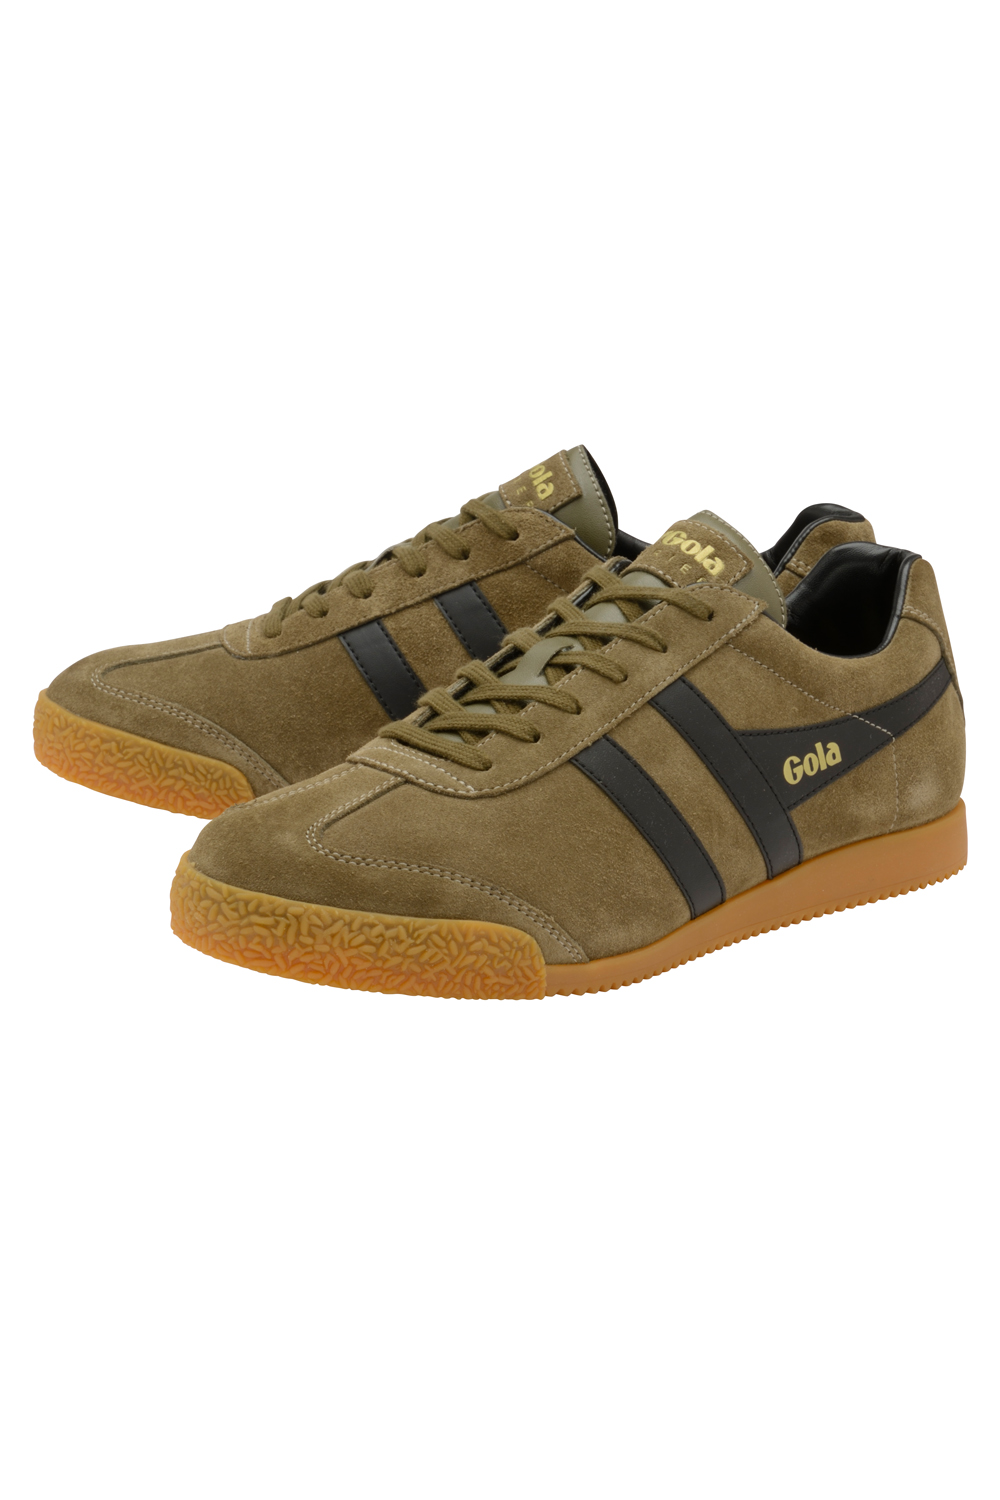 thumbnail 9 - Gola Harrier Suede Classic Vintage Lace-Up Sneakers Mens Trainers Low Top Shoes